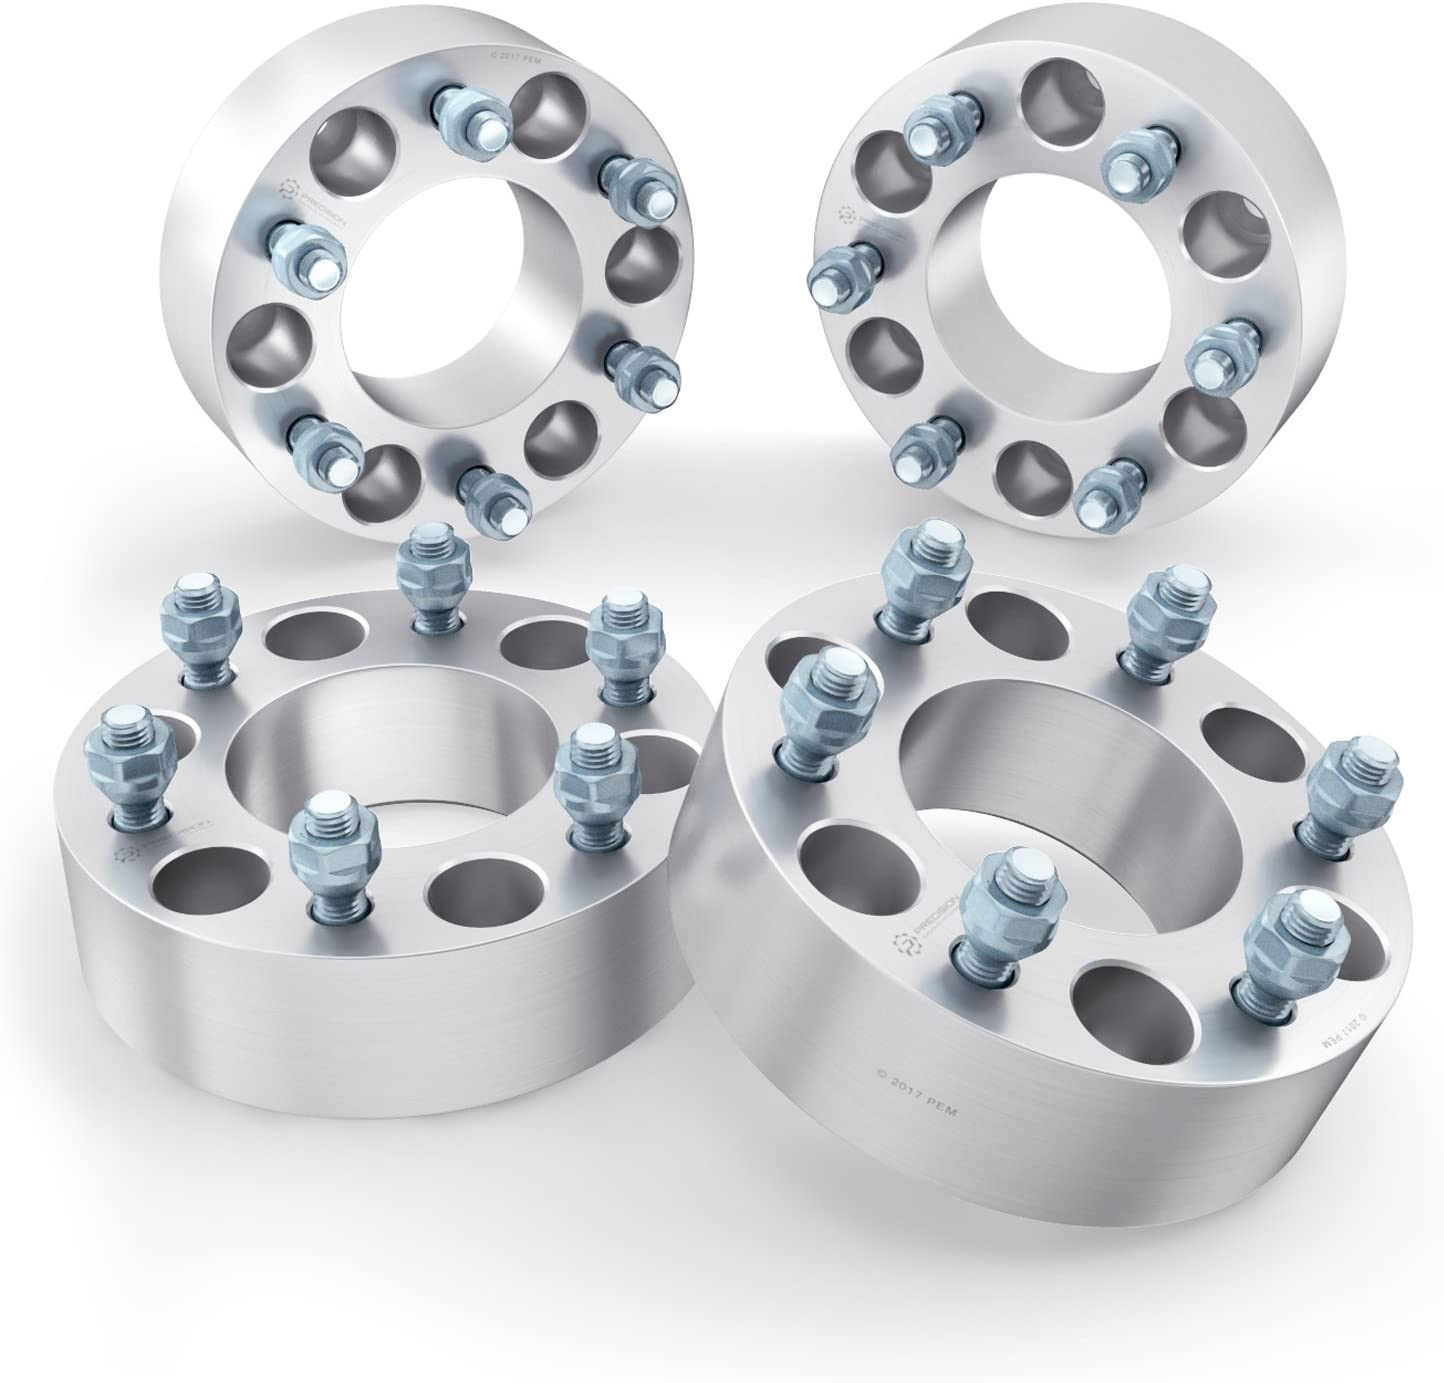 RockTrix 1.5 inch Hubcentric Wheel Spacers (6x4.5 to 6x4.5, 71.5mm bore, 1/2x20 Studs Nuts) Compatible with Dodge 1992-2010 Viper, 1991-2003 Dakota, 1991-2003 Durango (6x114.3, 38mm, Silver, 4pcs)